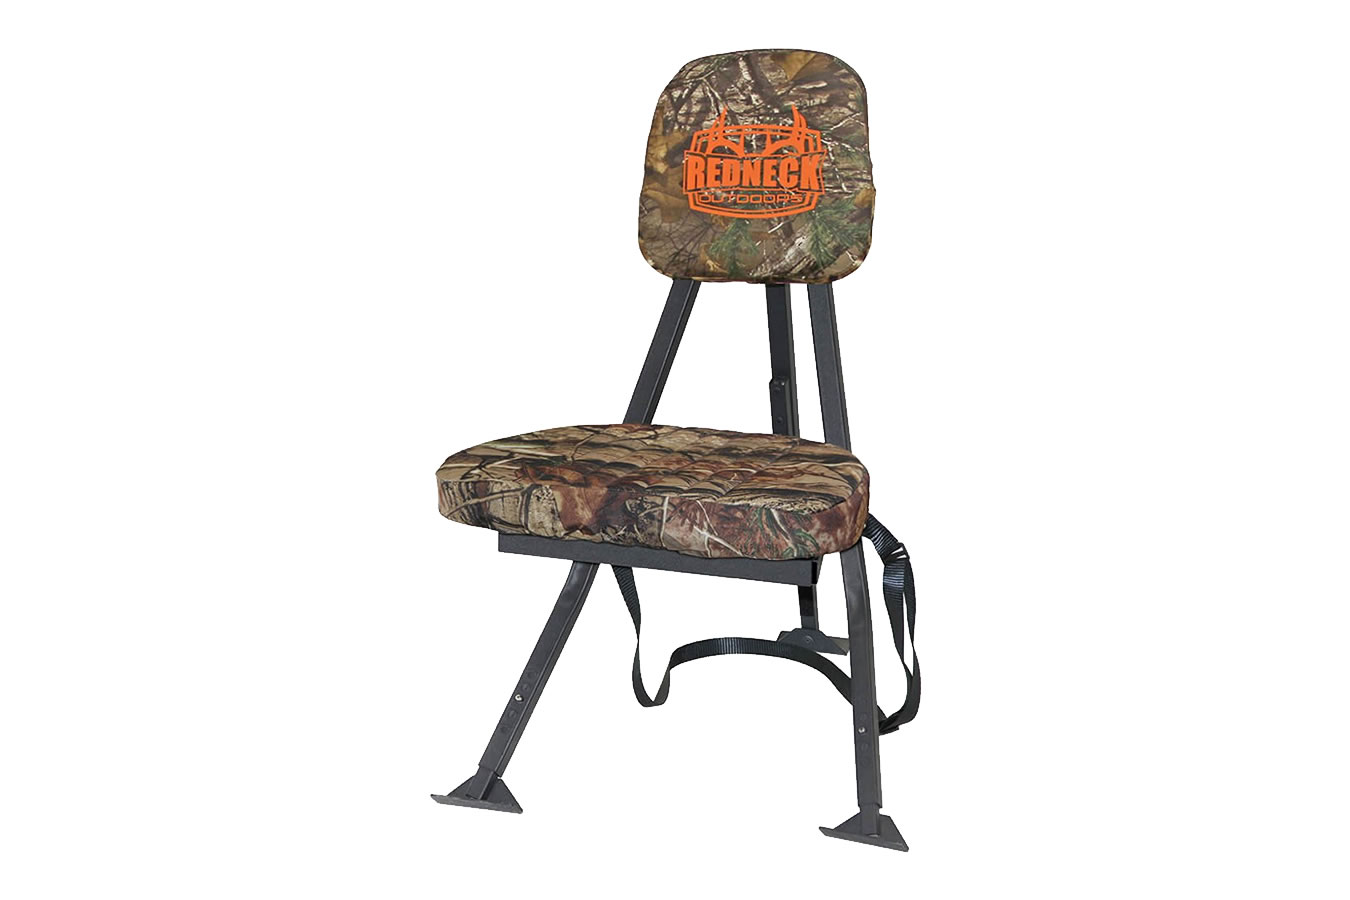 Redneck Outdoors Portable Hunting Chair Vance Outdoors